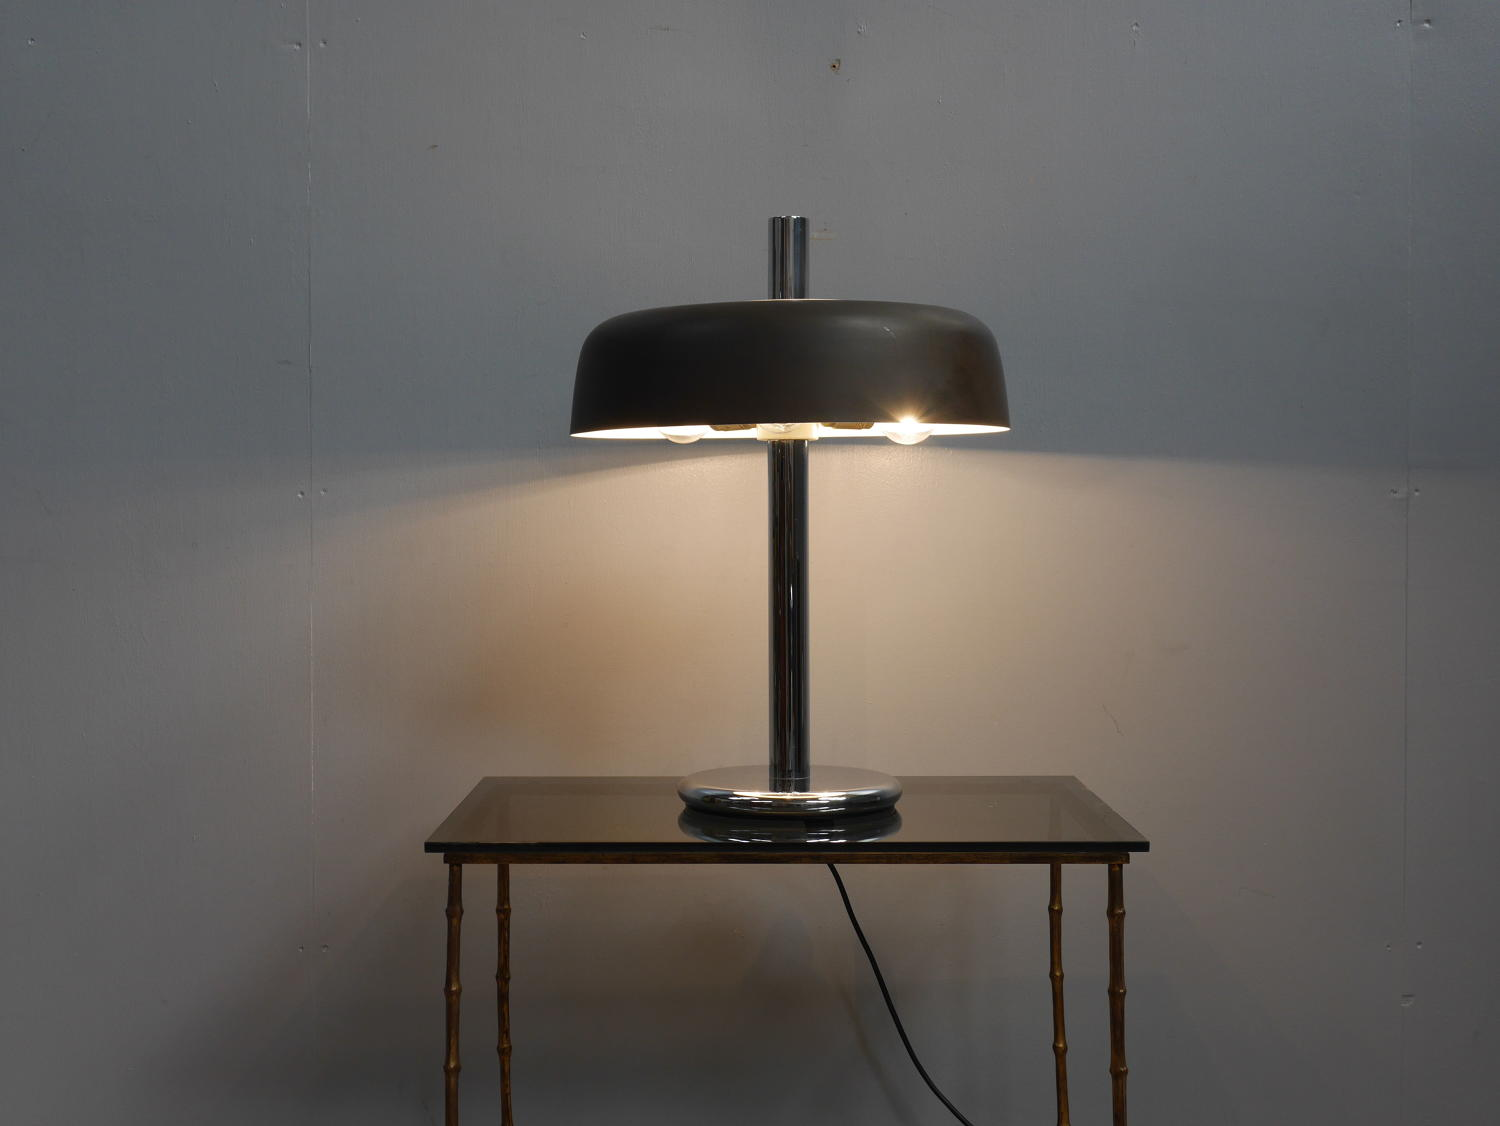 'Mushroom' Table Lamp by Egon Hillebrand